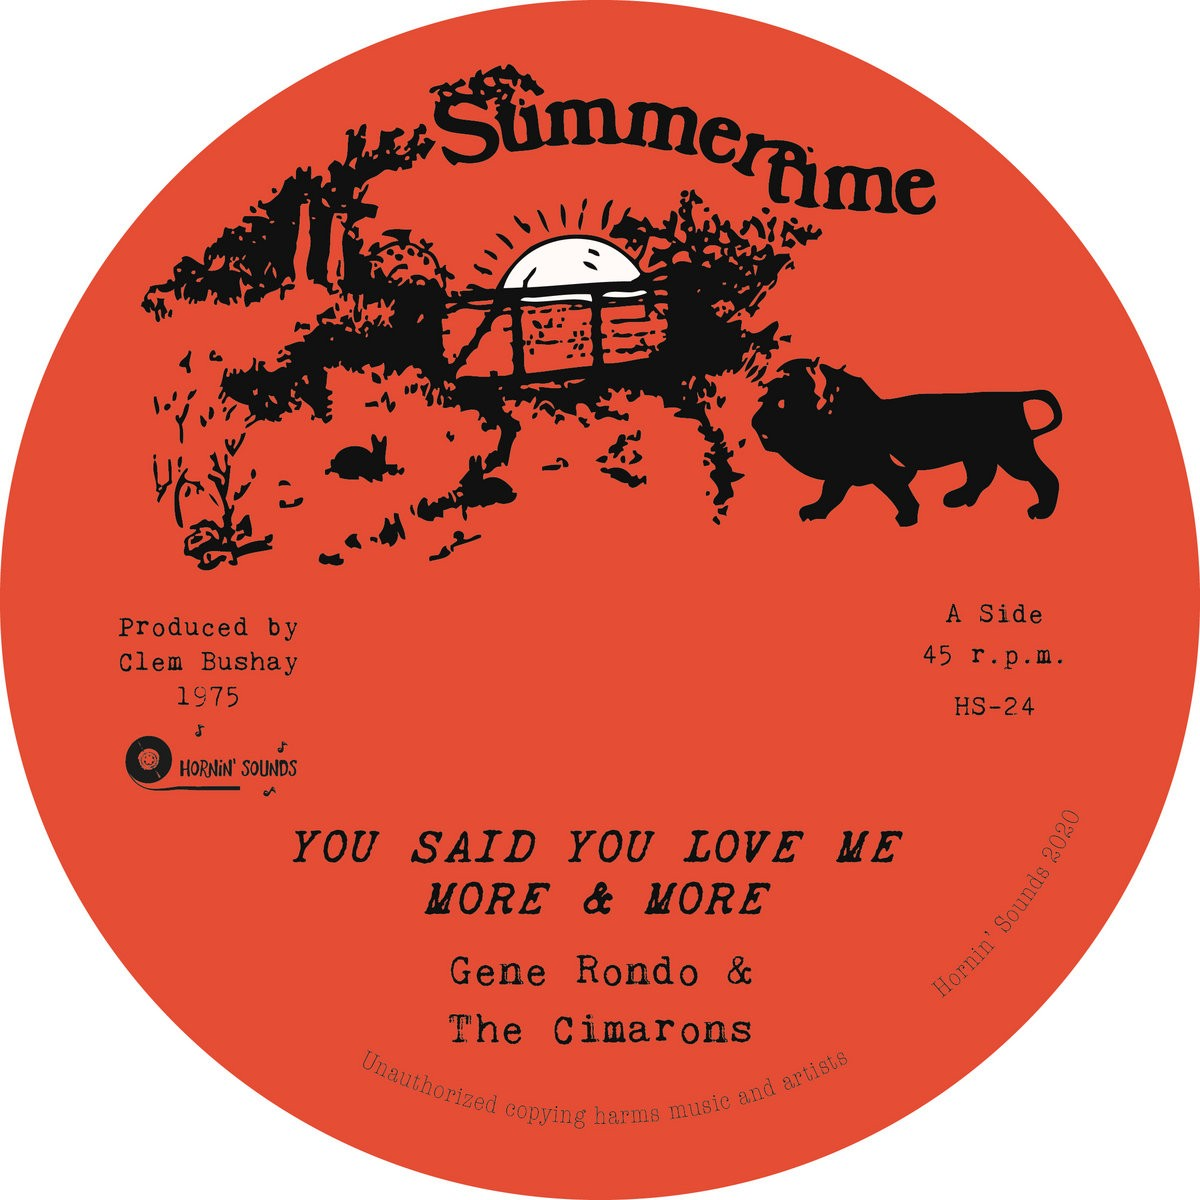 Gene Rondo & The Cimarons : You Said You Love Me More & More   Single / 7inch / 45T     Oldies / Classics